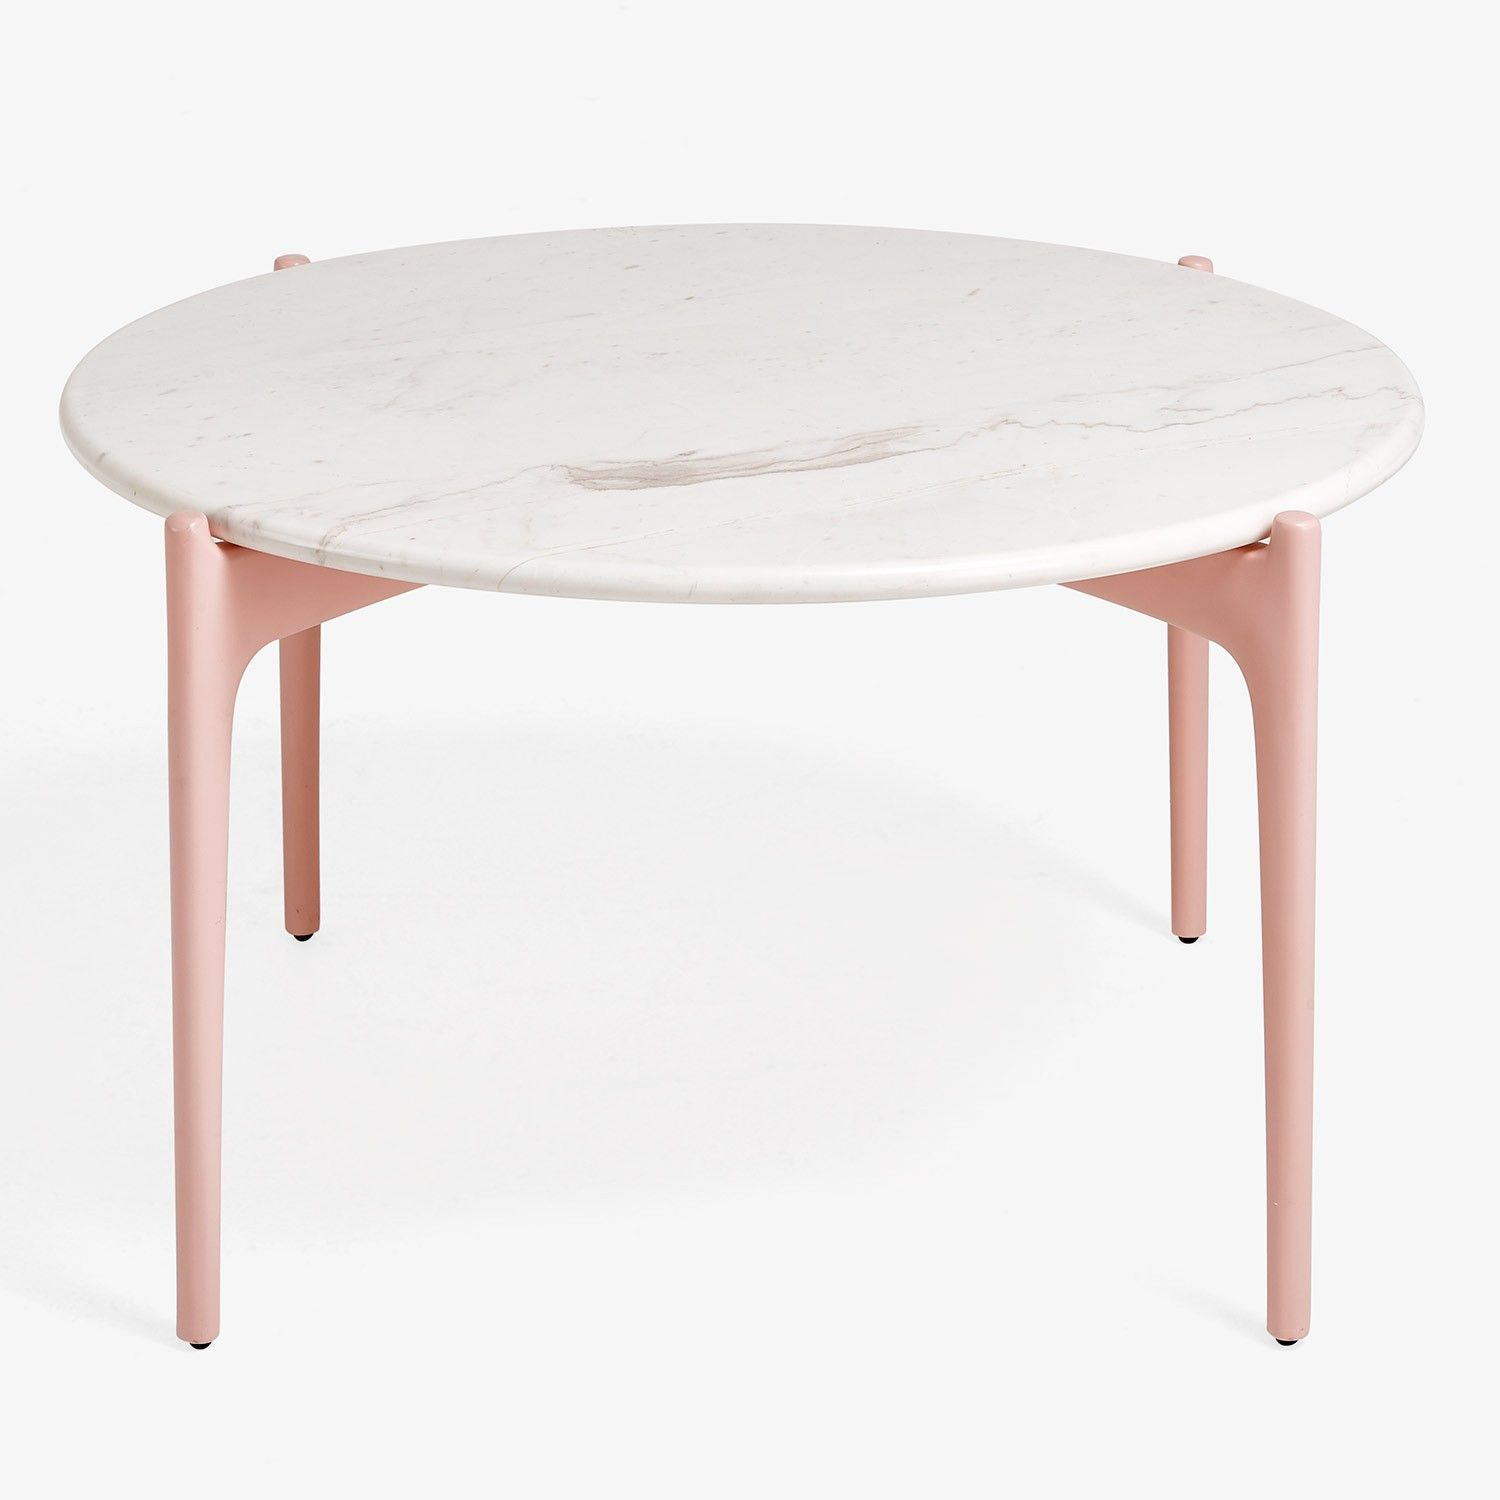 Couchtisch Pucci The Best Gifts For Design Lovers 250 And Up Tb Decor Table